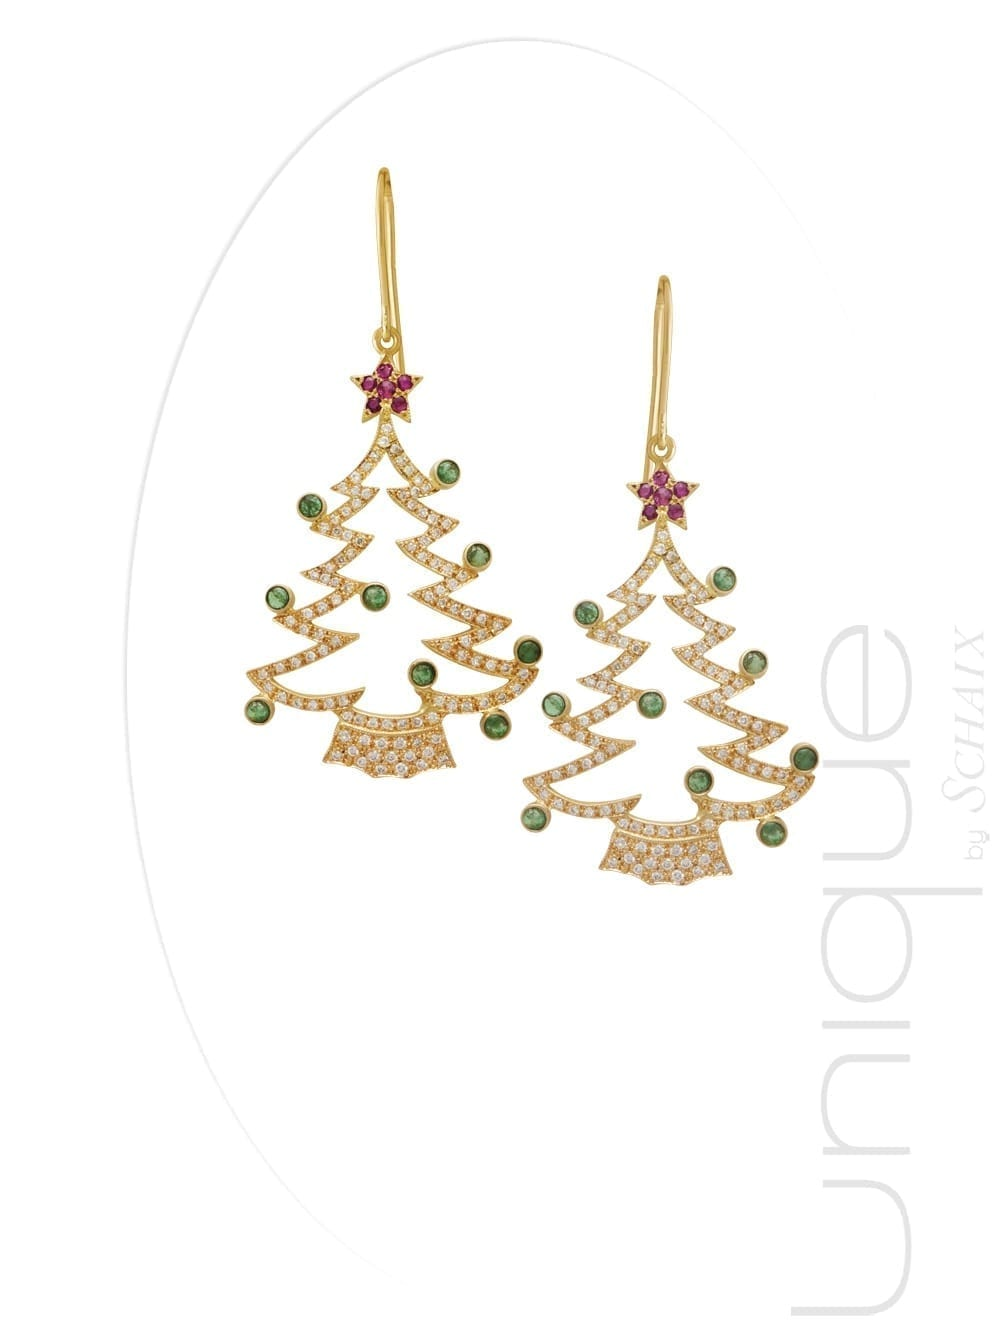 jewel-jewels-jewellery-hand-made-in-france-paris-unique-earrings-diamond-yellow-gold-ruby-emerald-xmas-christmas-gift-tree